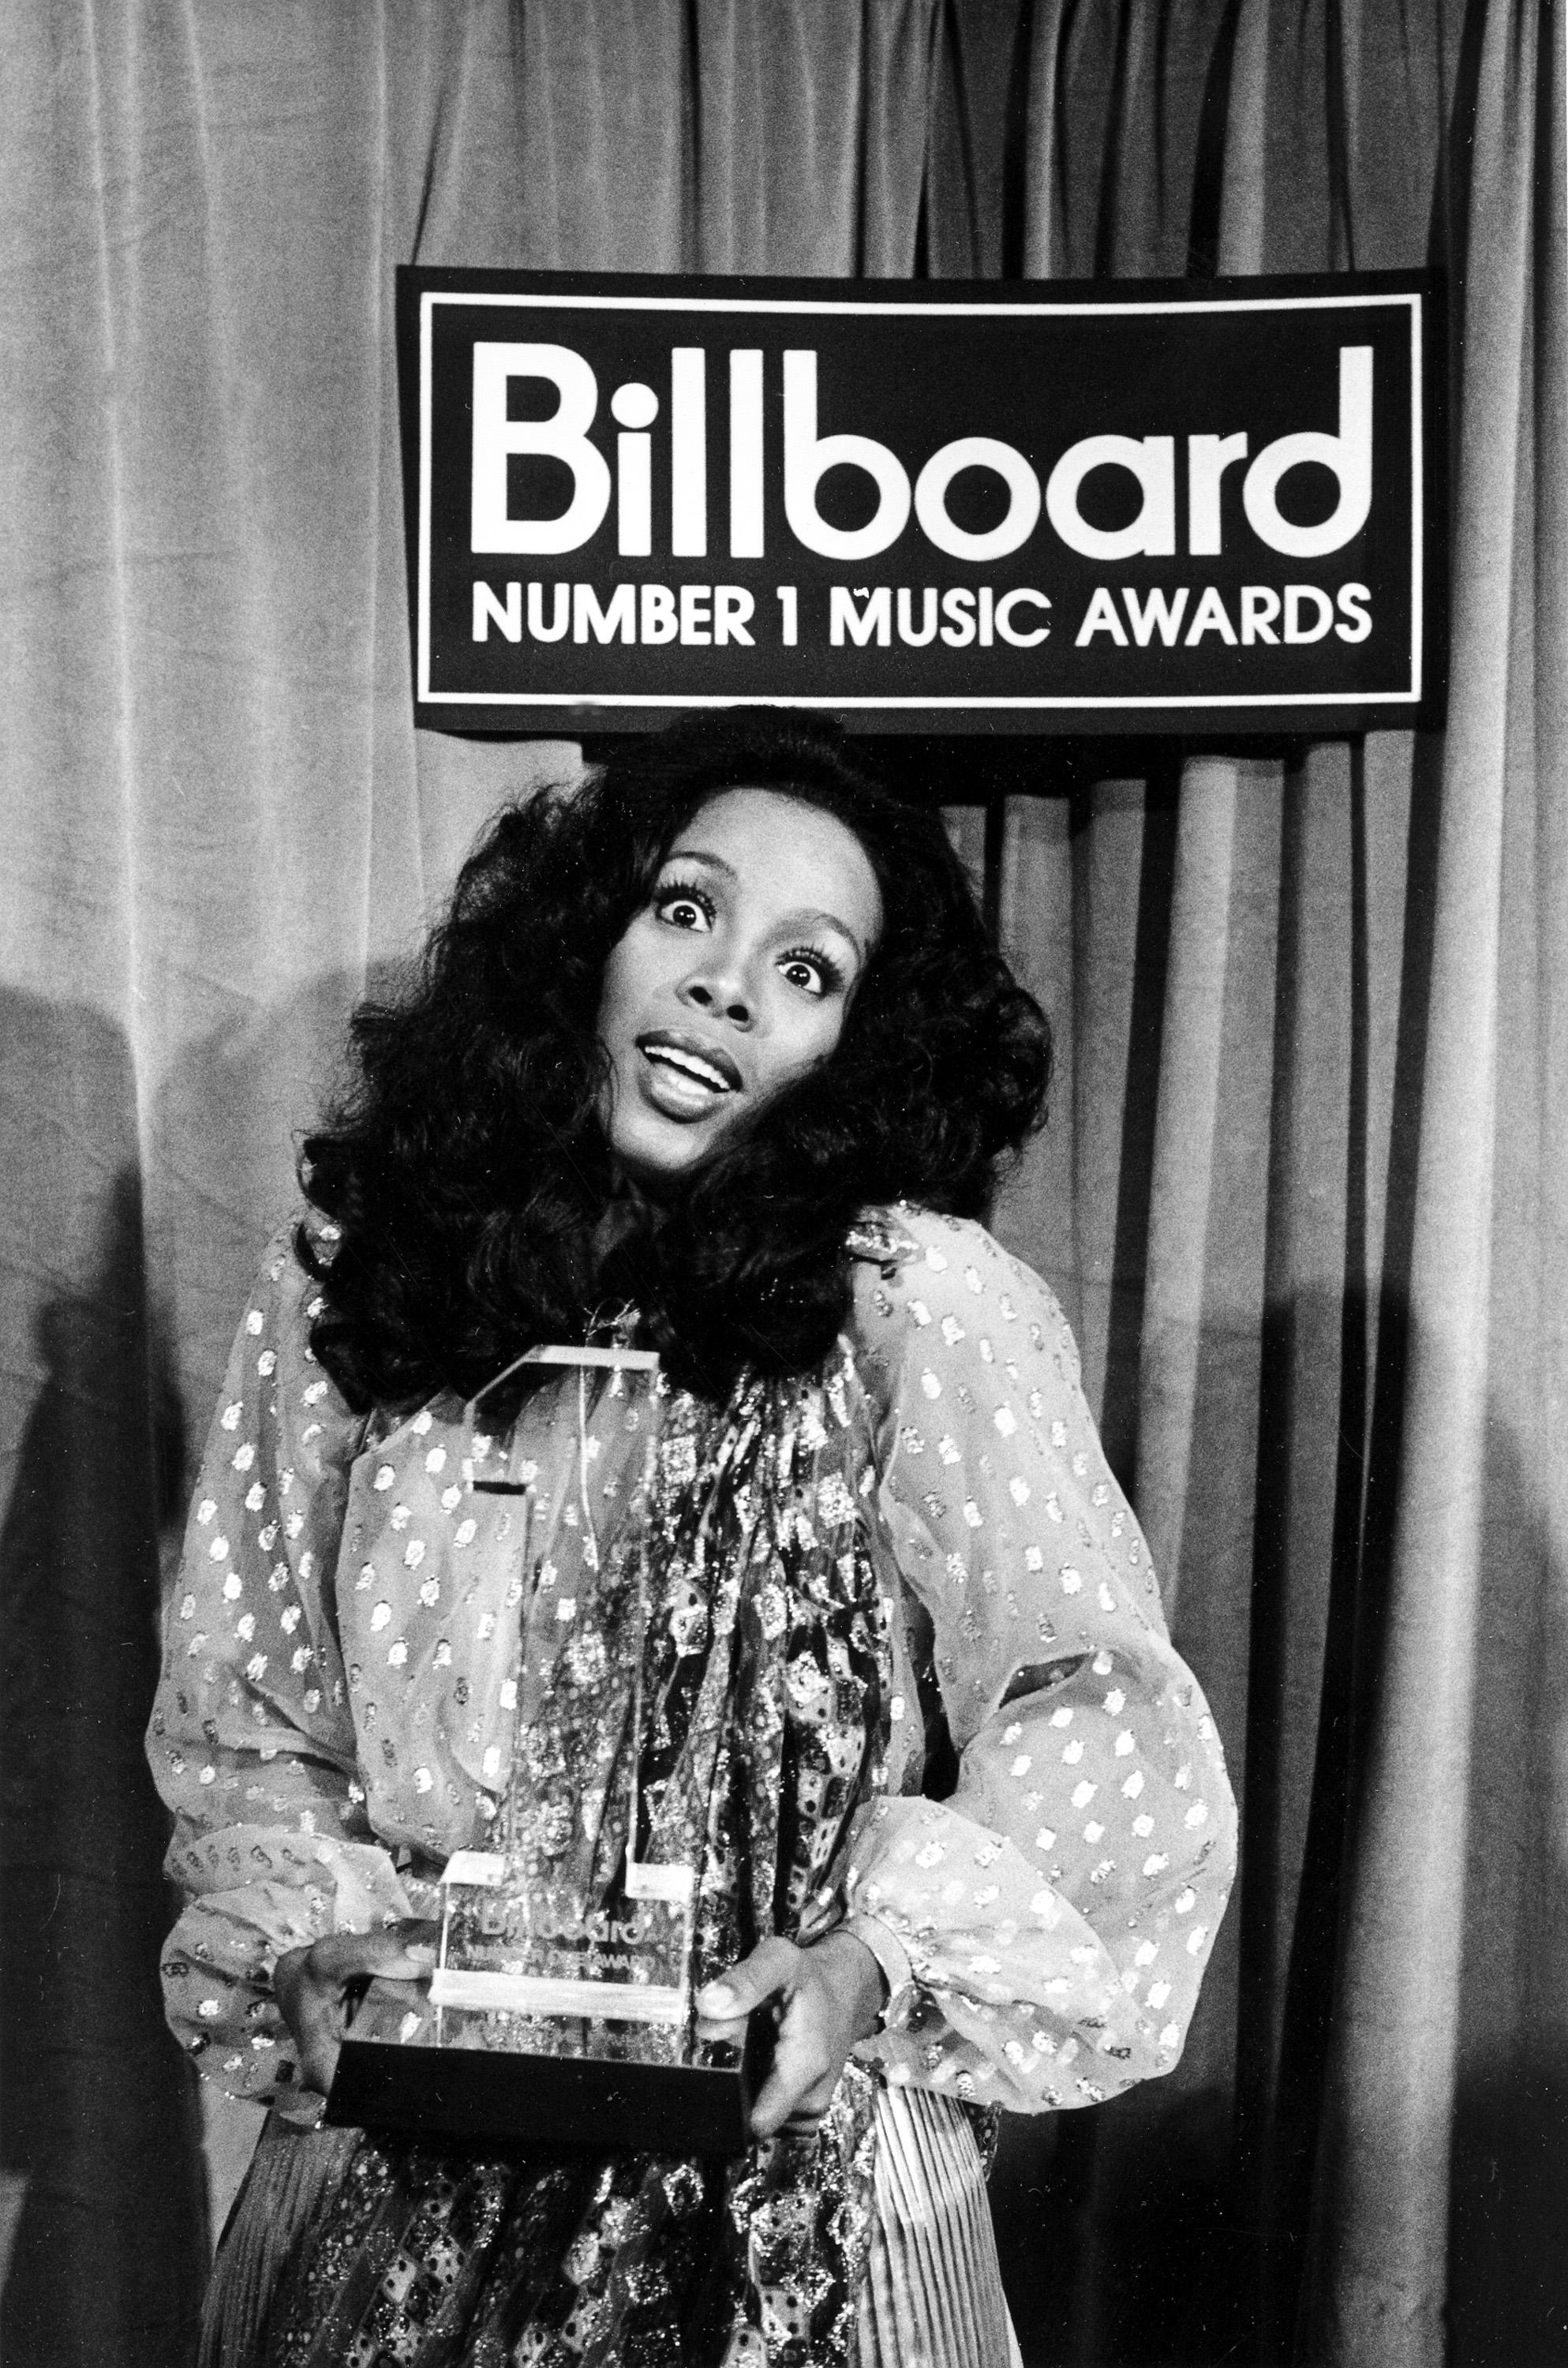 "FILE - In this Dec. 11, 1977 file photo,Donna Summer holds her award at the Billboard Number 1 Music Awards in Santa Monica, Calif. Summer, the Queen of Disco who ruled the dance floors with anthems like ""Last Dance,"" ""Love to Love You Baby"" and ""Bad Girl,"" has died. Her family released a statement, saying Summer died Thursday, May 17, 2012. She was 63. (AP Photo/File)"